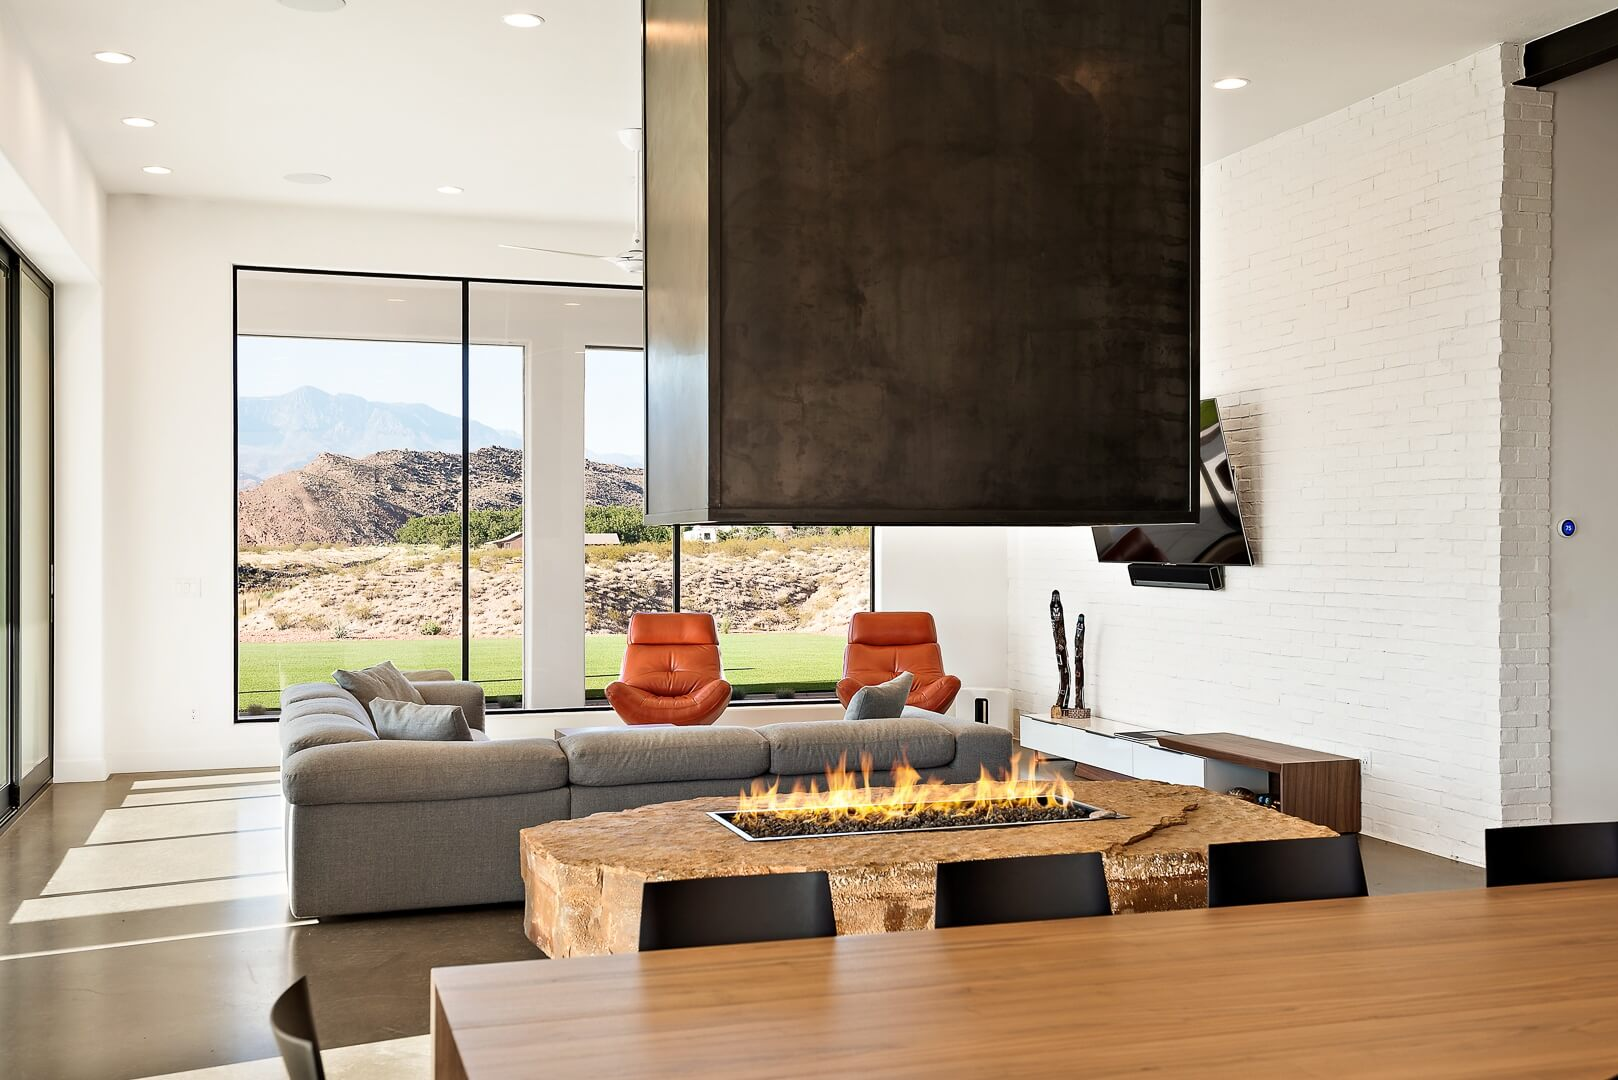 Luxury Living Room with Custom Indoor Fireplace and Dining Area - St. George Custom Home Design